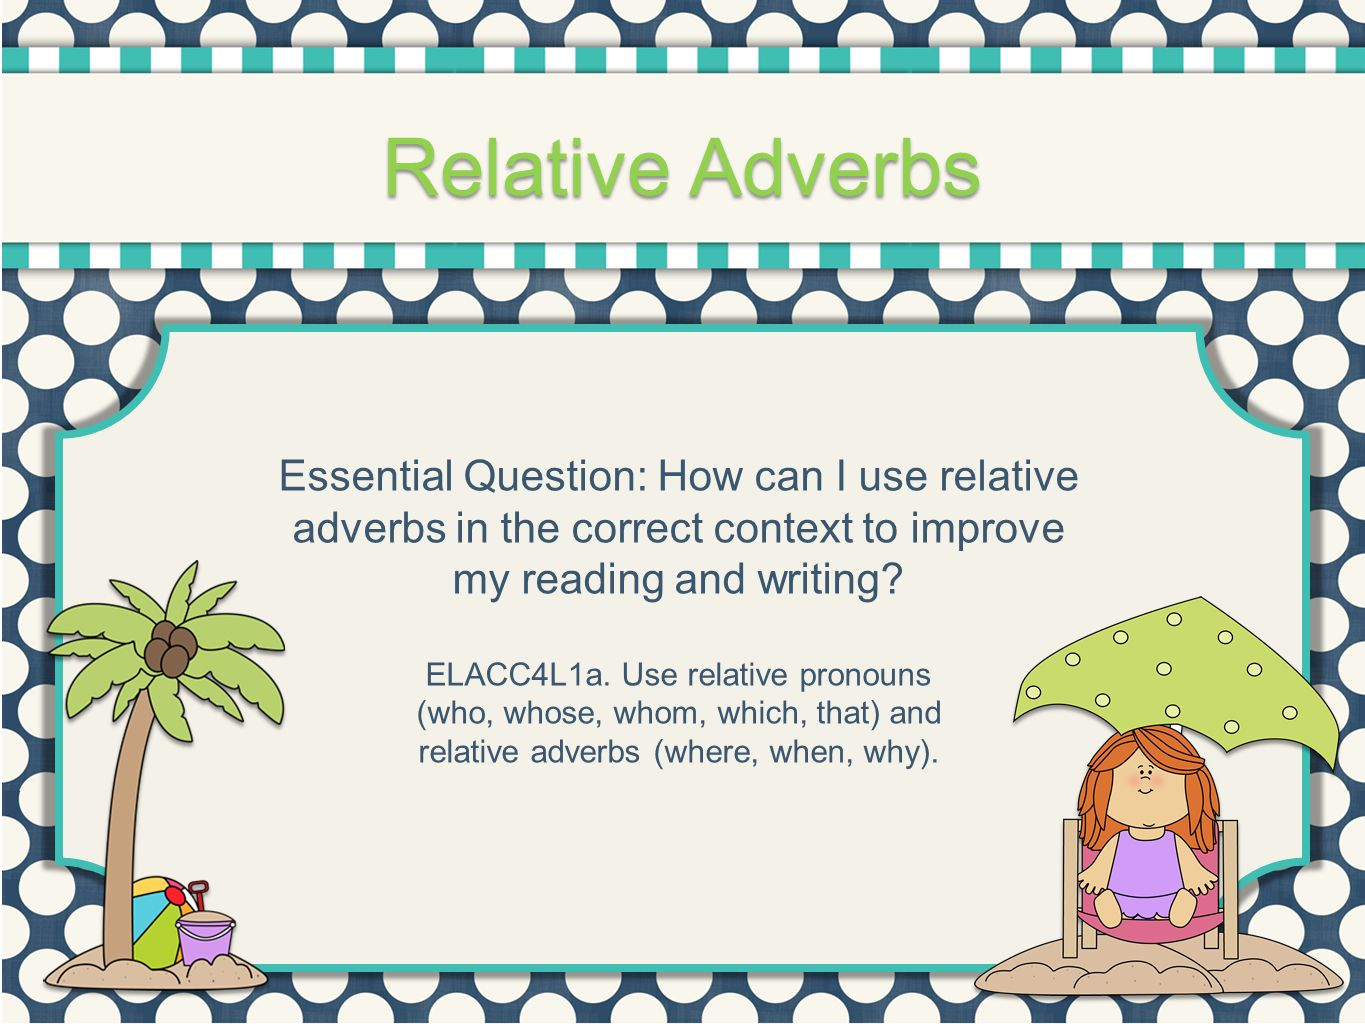 Relative Adverbs Essential Question: How can I use relative adverbs in the correct context to improve my reading and writing